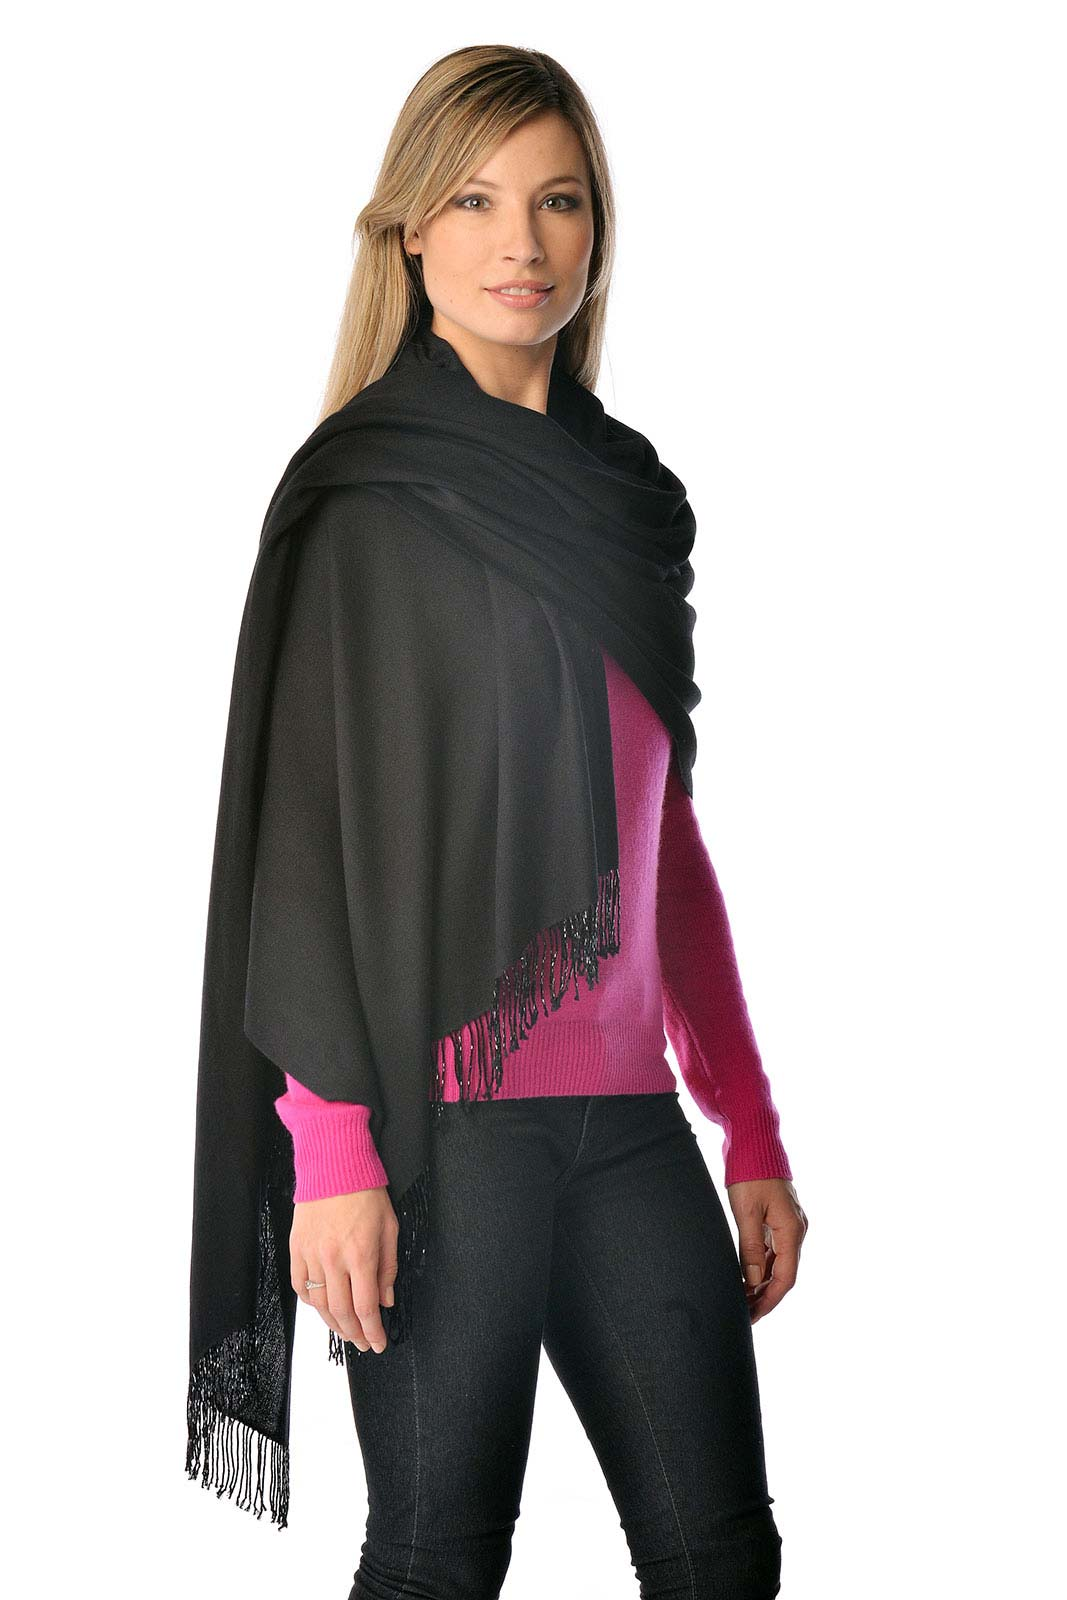 Select from our stunning range of Beaded Pashmina Shawls. These pashminas are made with 70 Cashmere and 30 Silk and measure 36 x 80 and have 3 beaded tassels on both ends. This shawl is in a black color.